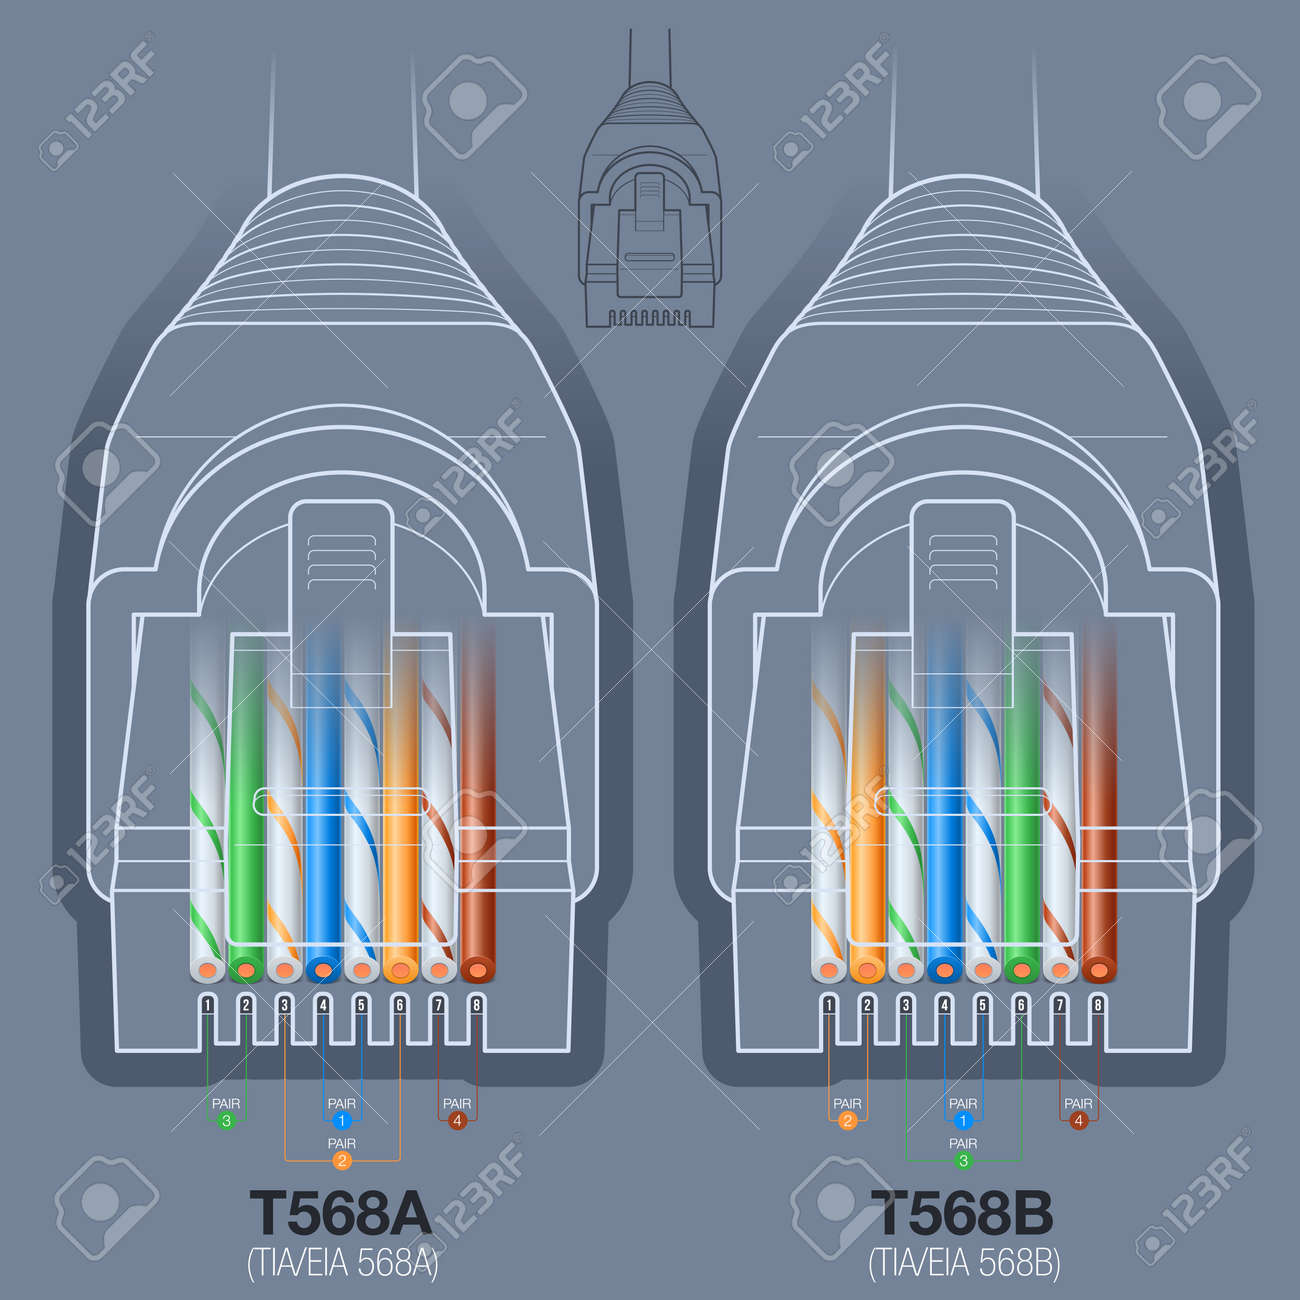 hight resolution of rj45 network cable connector t568a t568b wiring diagram stock vector 45694360